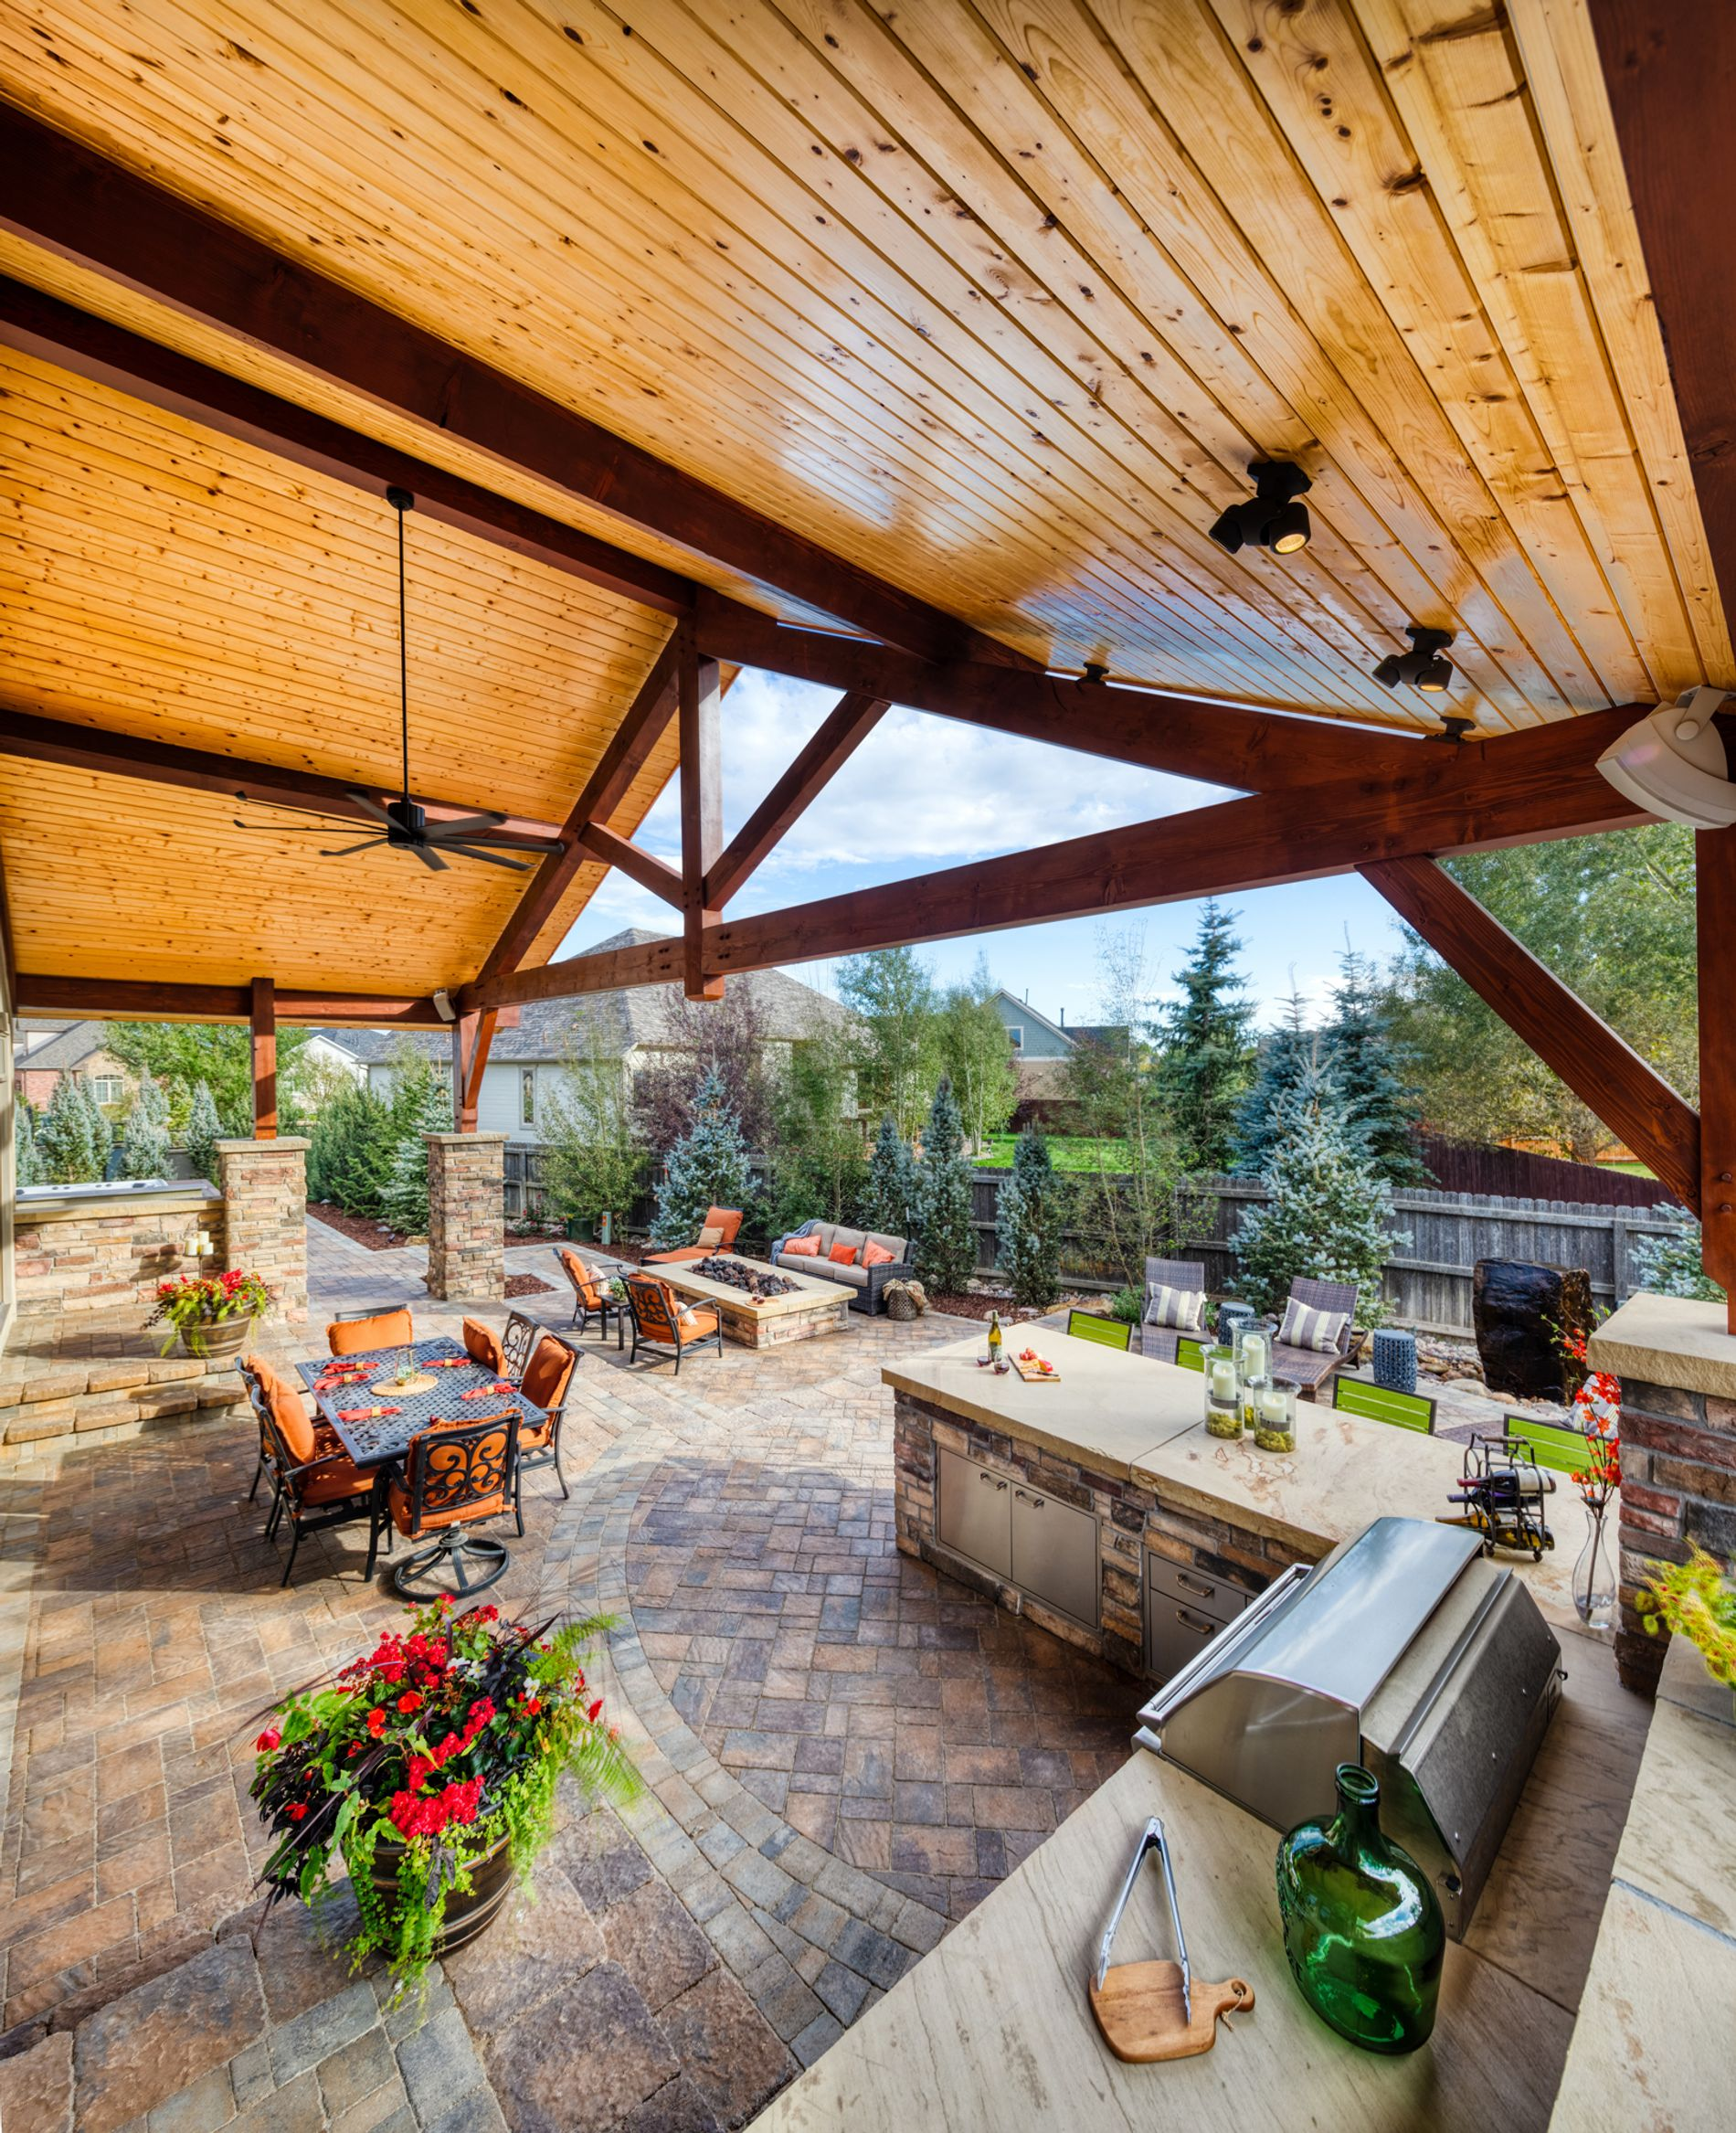 Timber frame gable roof with tongue and groove ceiling covers a paver patio